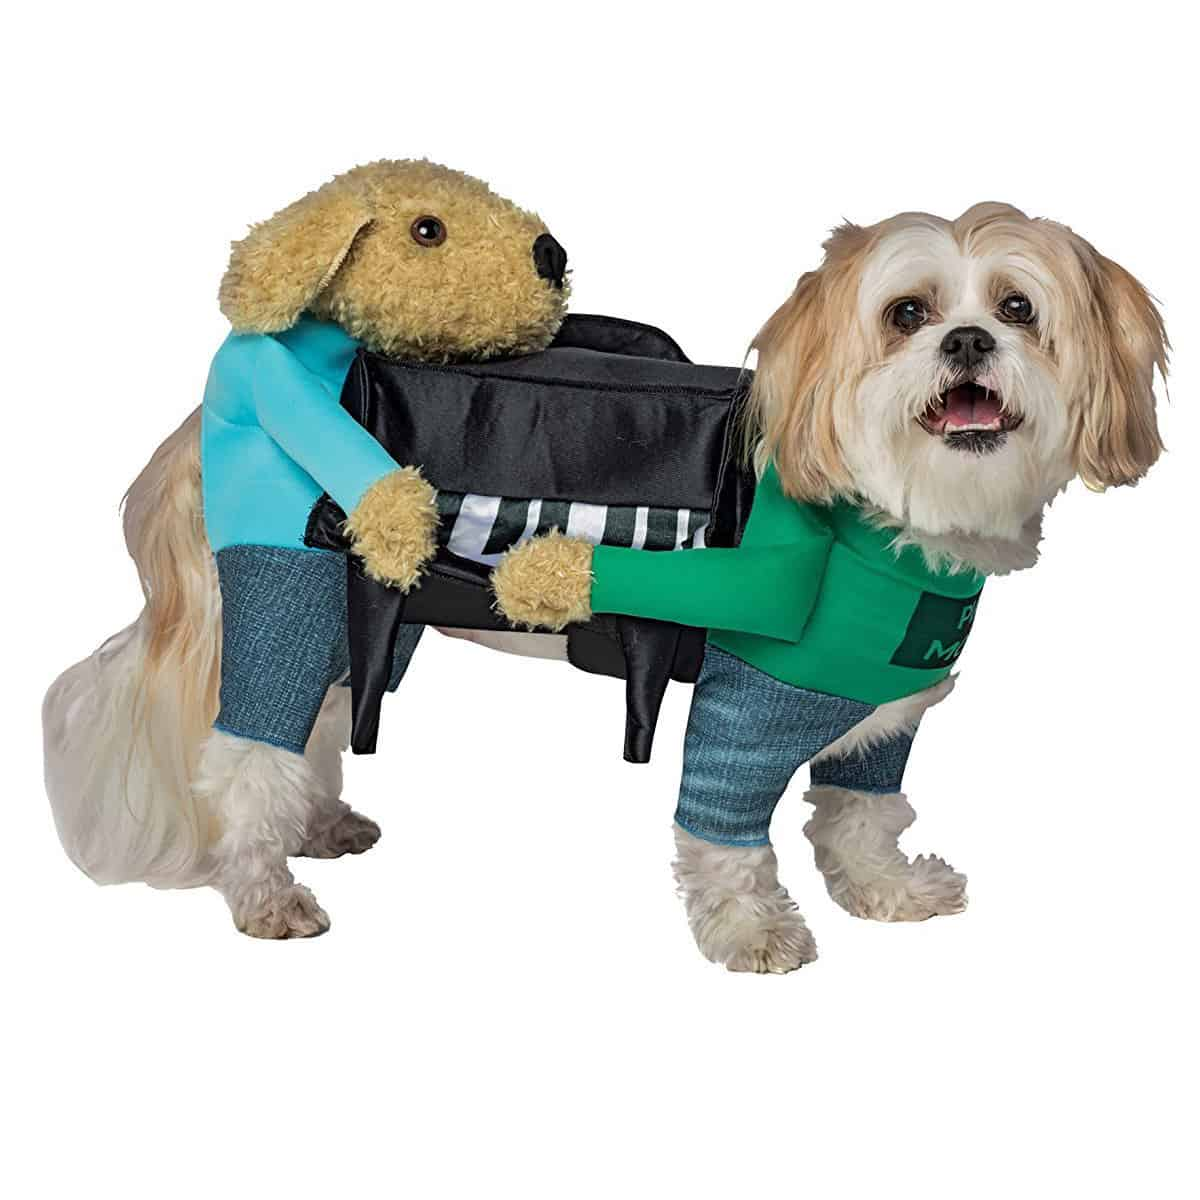 Dogs-Carrying-a-Piano-Pet-Costume.jpg